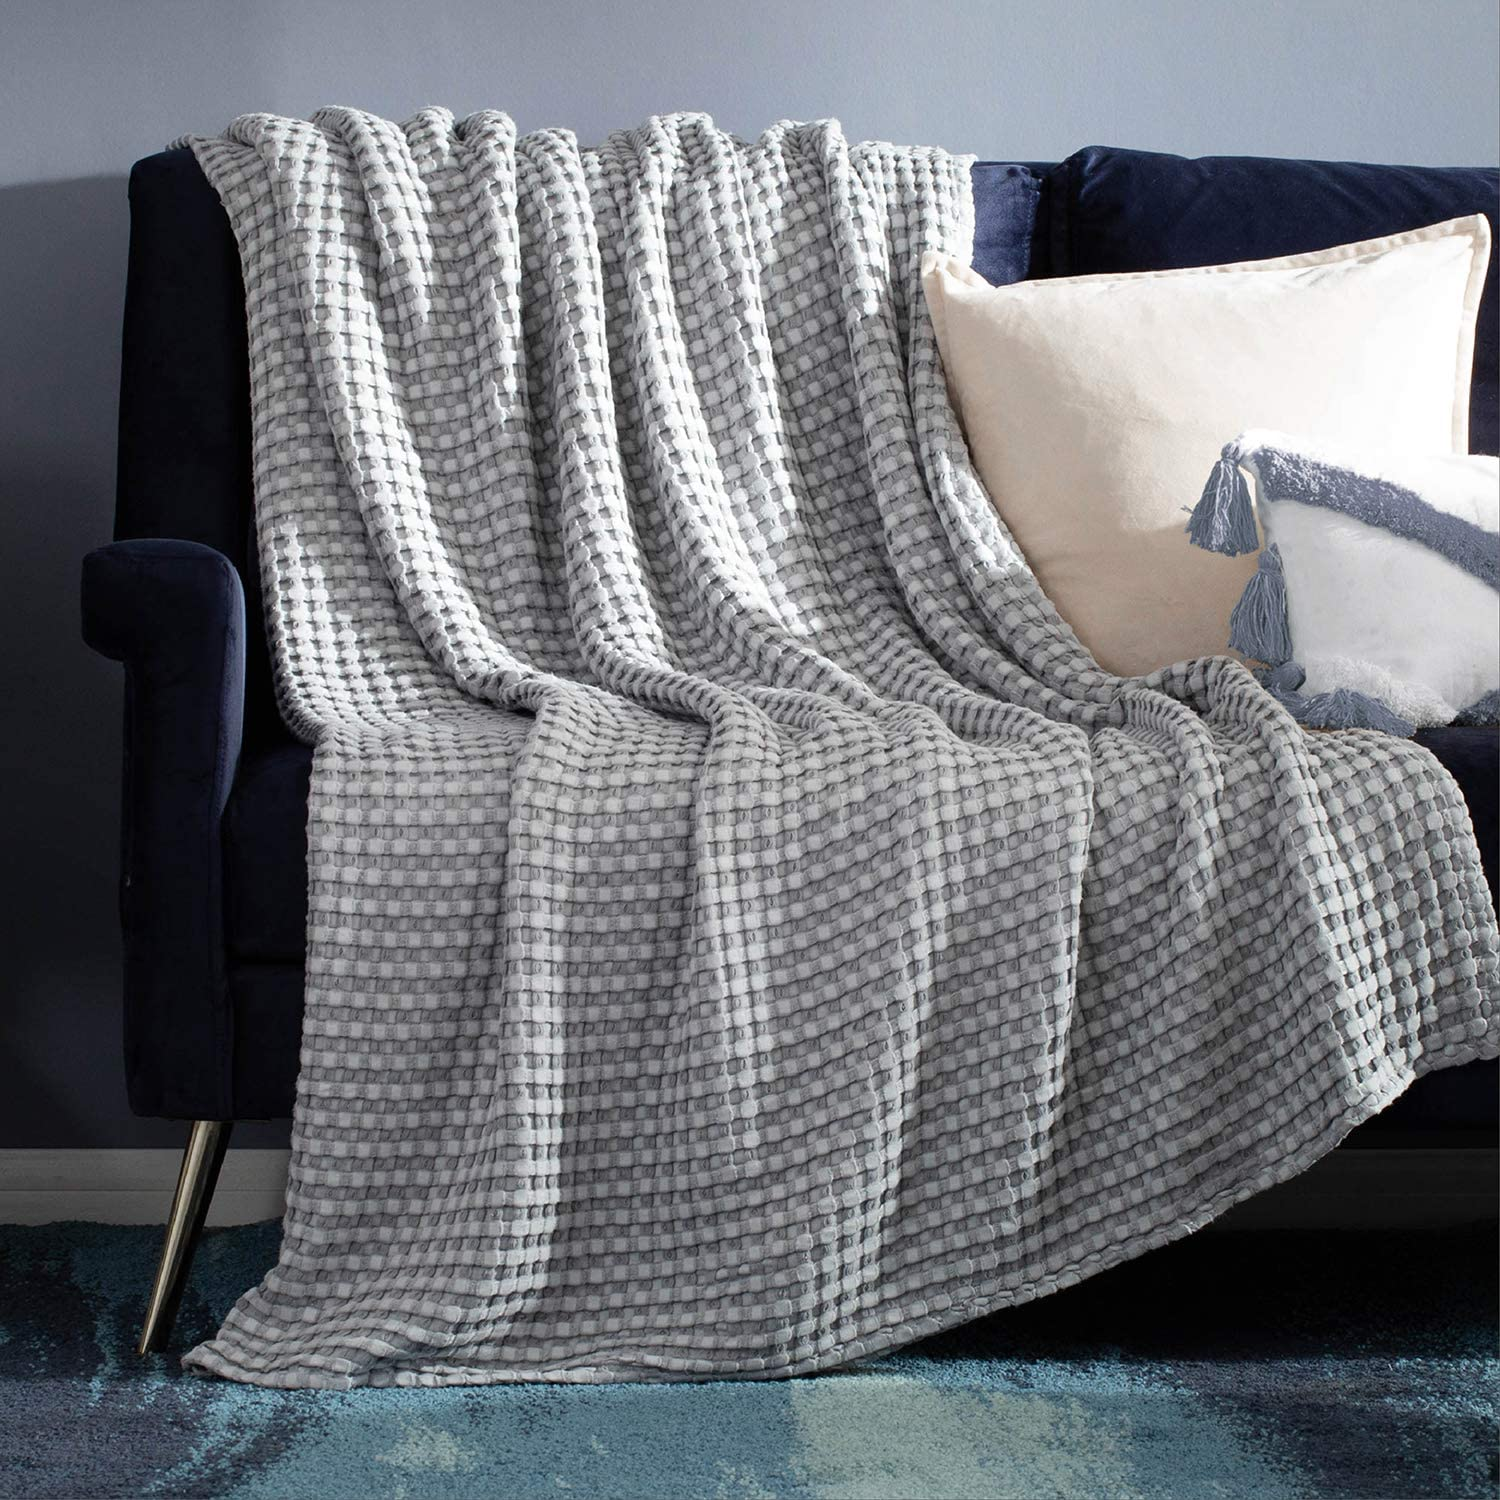 Bedsure 50% Cotton 50% Bamboo Blanket, Waffle Weave Throw Blanket for Couch Sofa, Soft Decorative Lightweight Blanket for All Seasons(Throw Size, 50